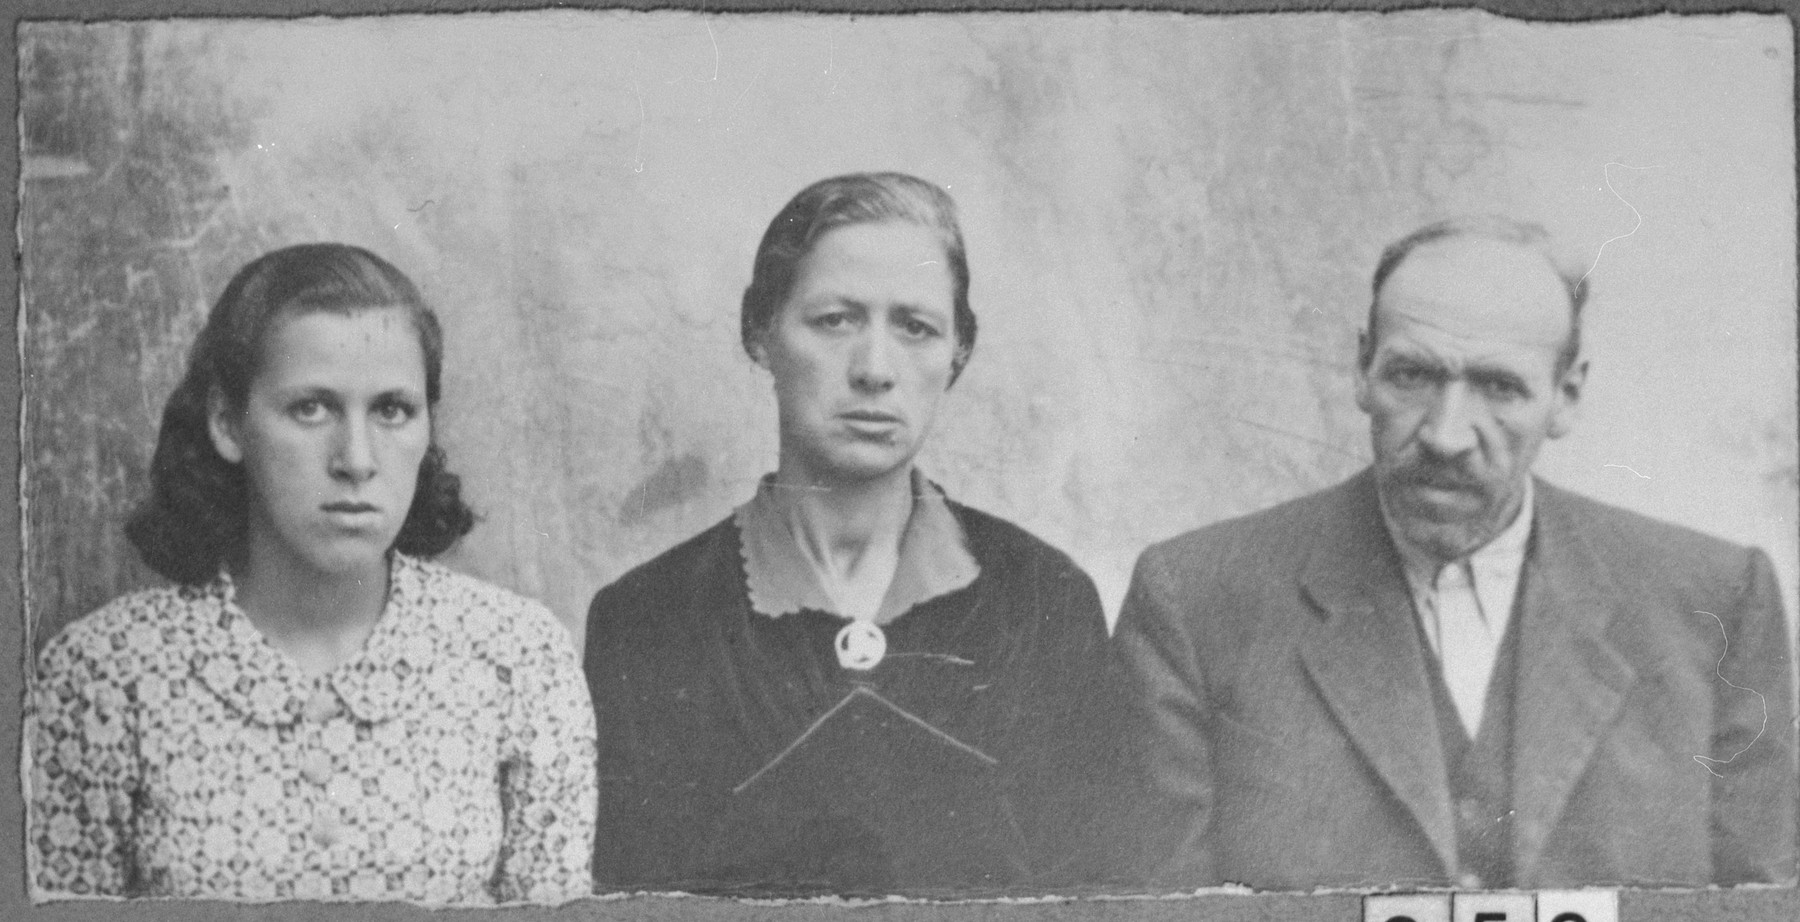 Portrait of Mushon Simaya, his wife, Mathilda, and his daughter, Rekula.  Mushon was a laborer and Rekula, a student.  They lived at Nedelska 11 in Bitola.